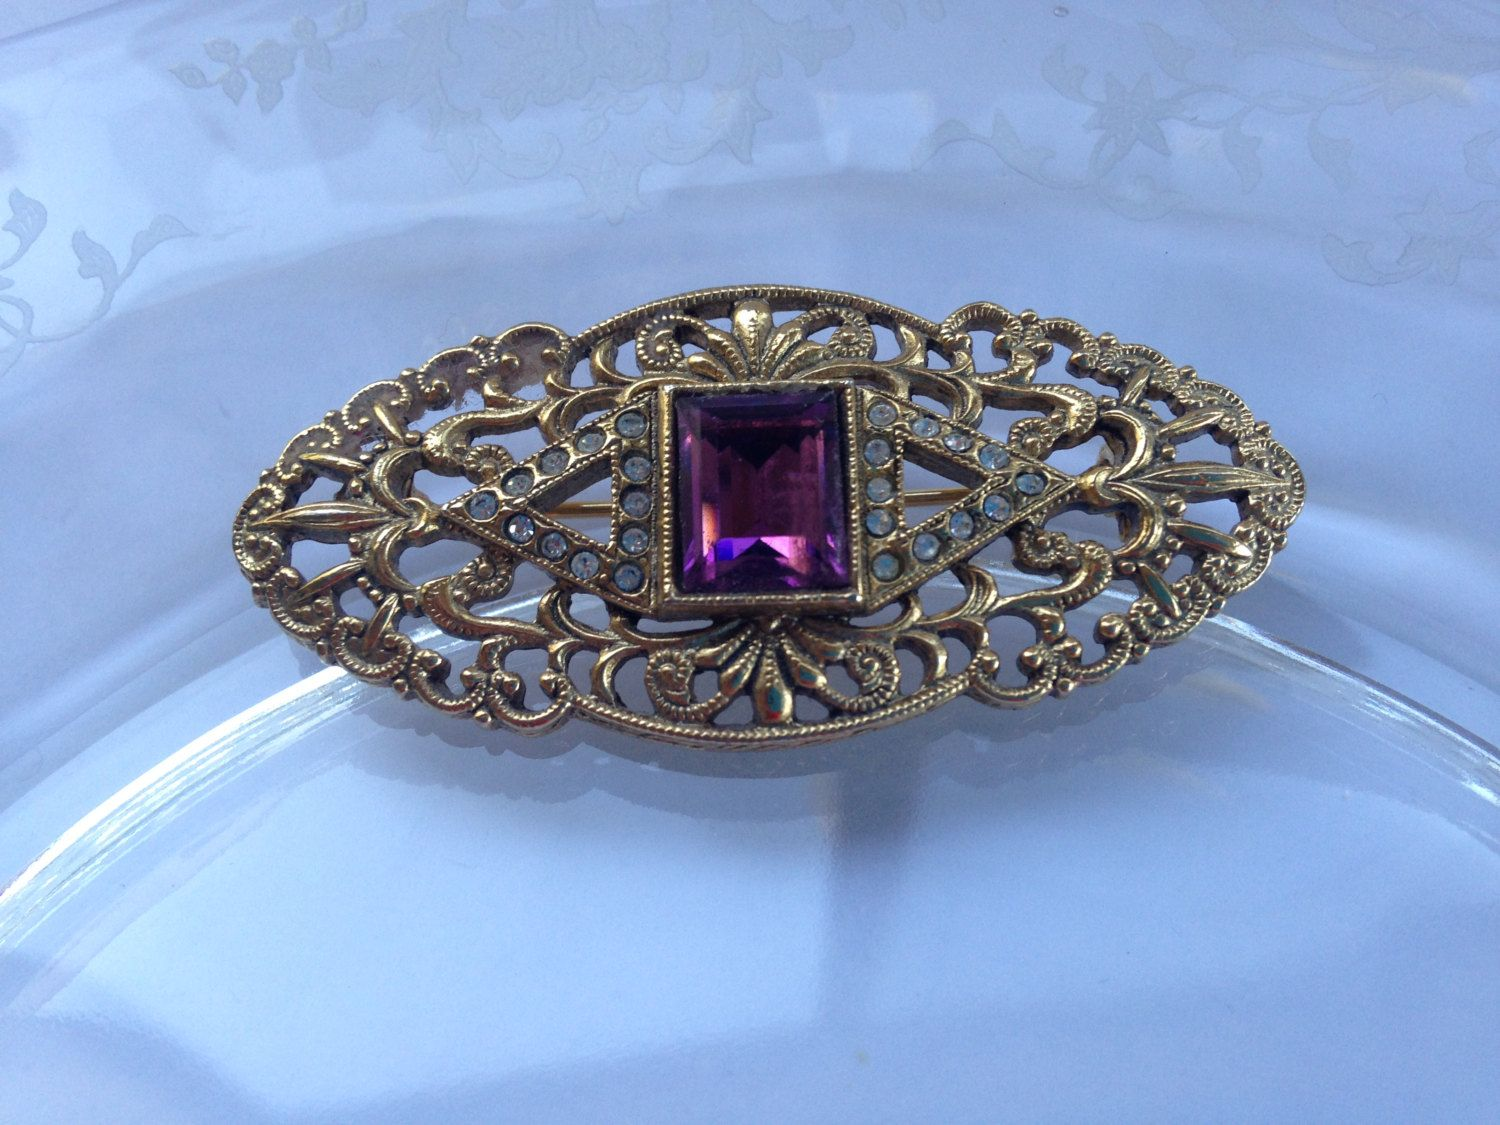 b203b5d35 Vintage Victorian Style Filigree Gold Tone Brooch Pin Emerald Cut Faux  Amethyst Glass Flanked by Tiny Clear Rhinestones by MyChocolatePuppy on Etsy